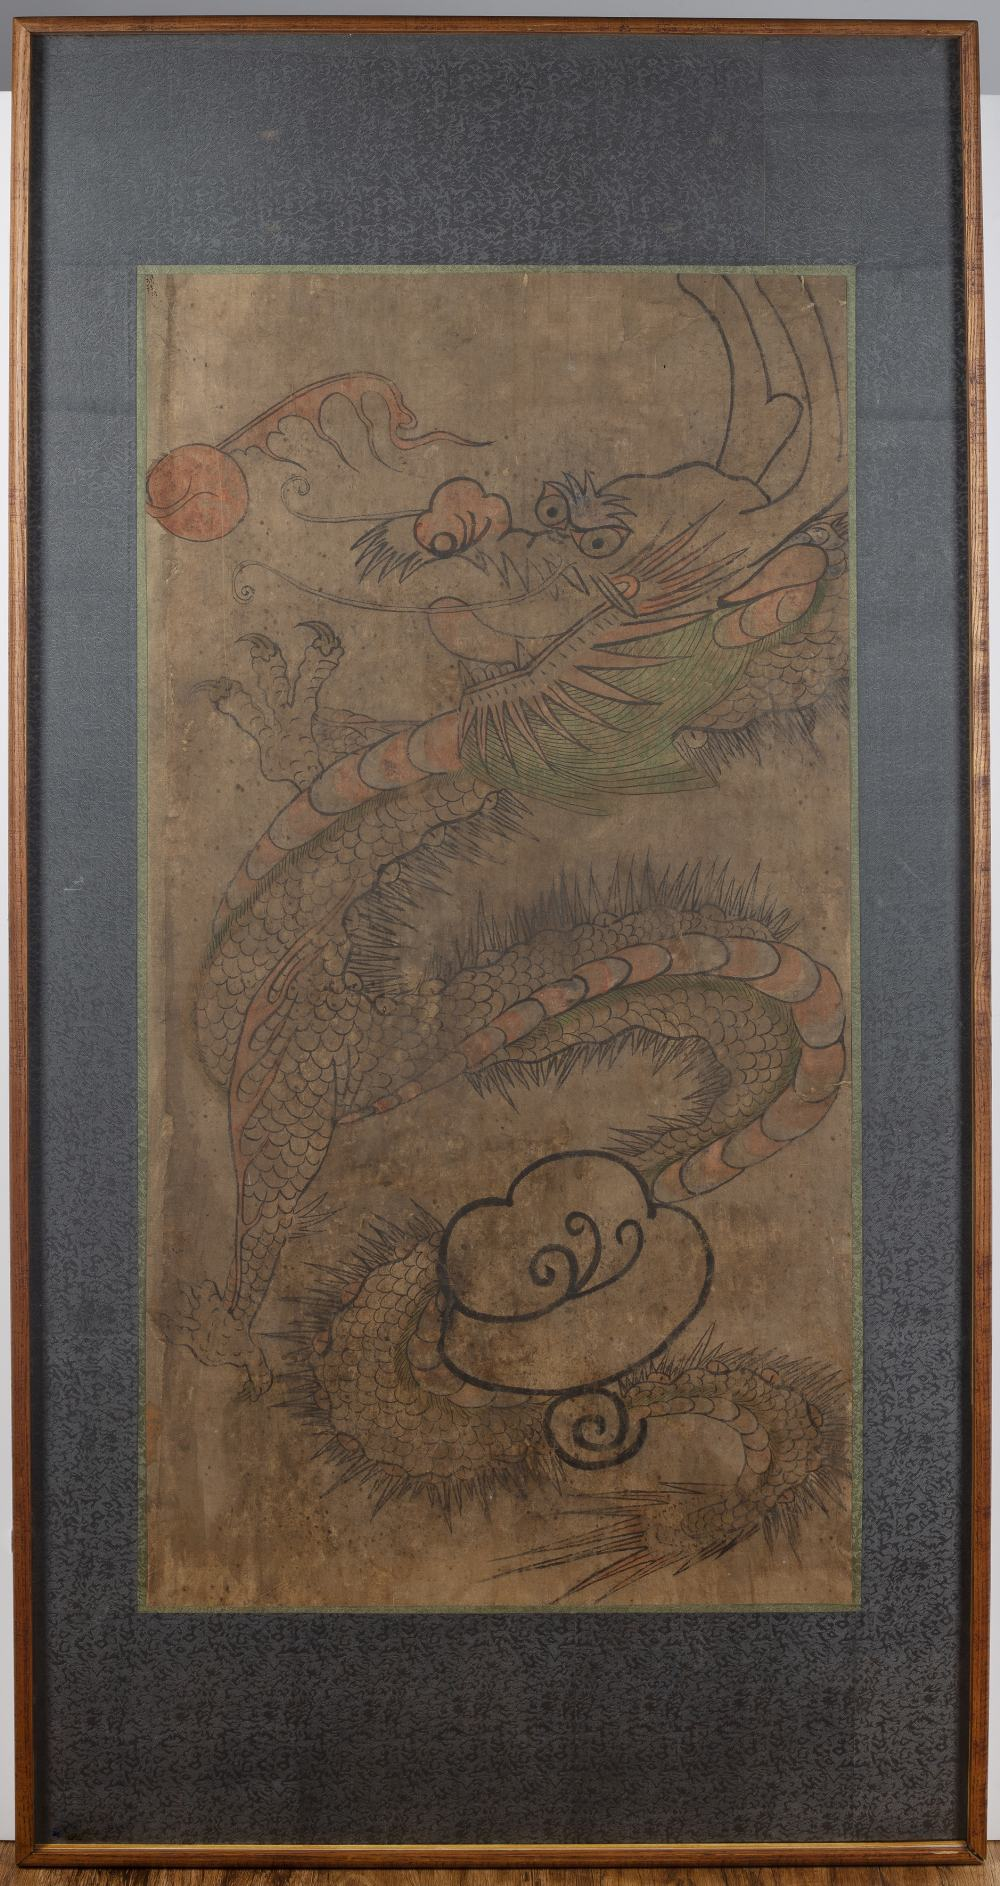 Framed scroll of a dragon Chinese depicted in flight amongst clouds chasing a flaming pearl, 87cm - Image 2 of 3